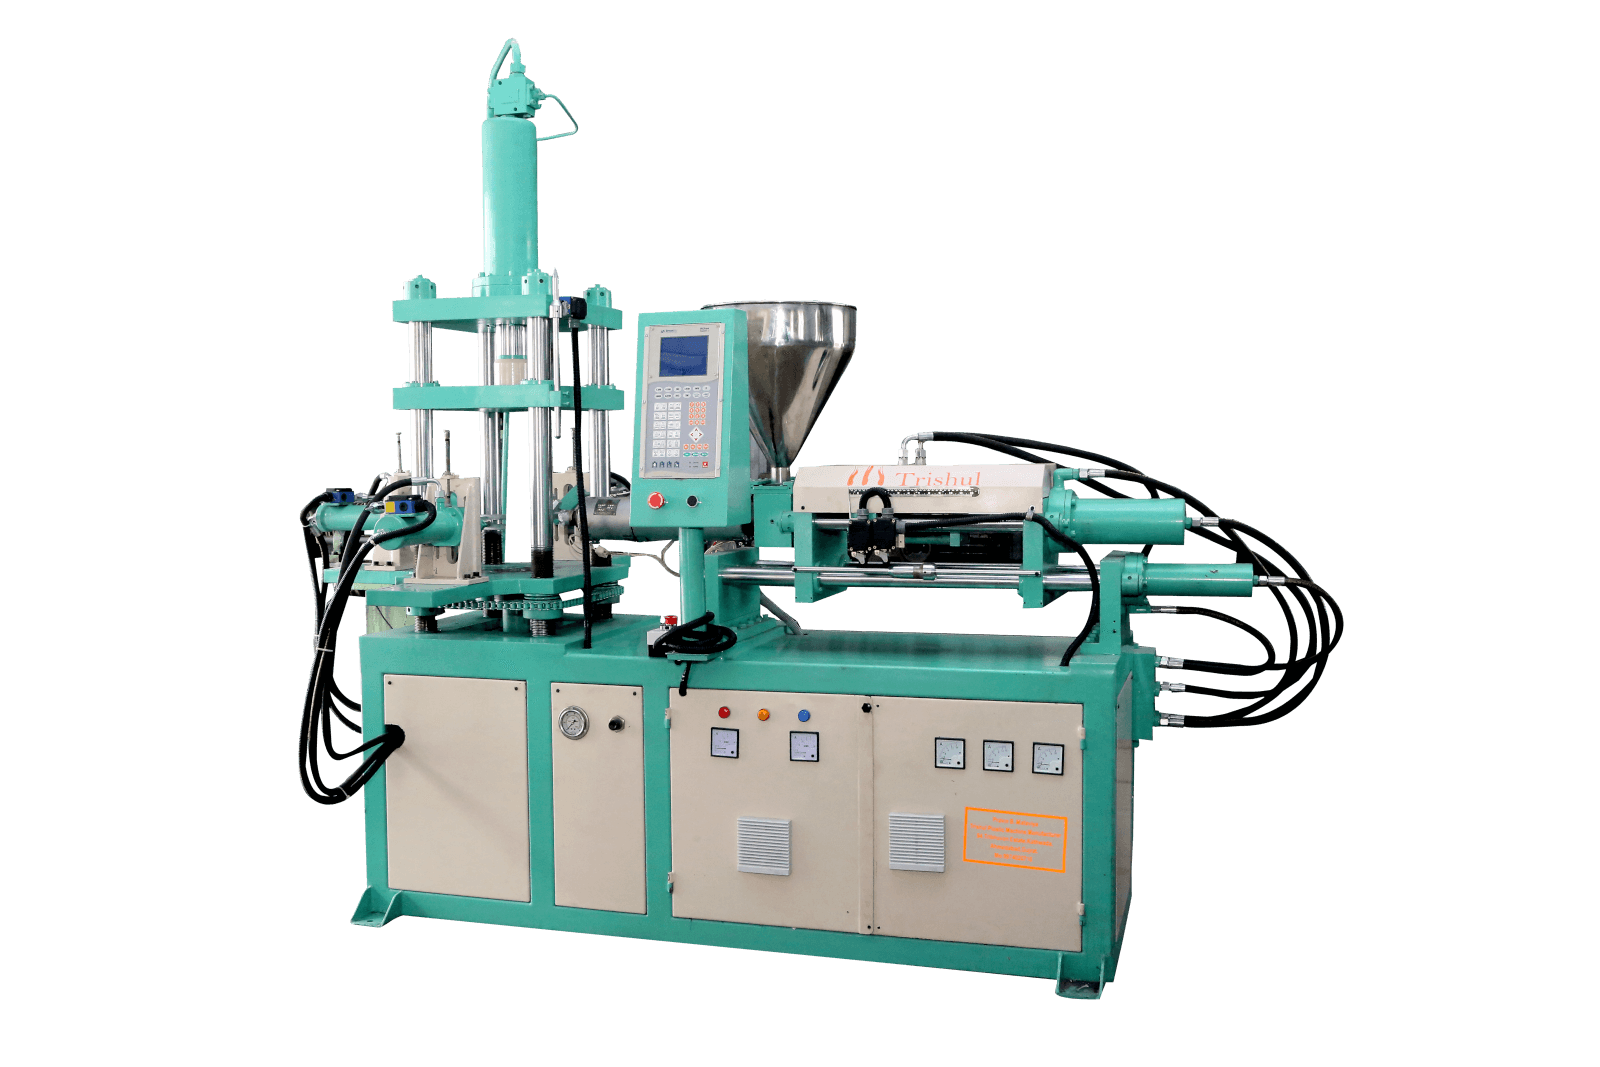 Fully Auto Vertical Clamping Horizontal Injection Moulding Machine